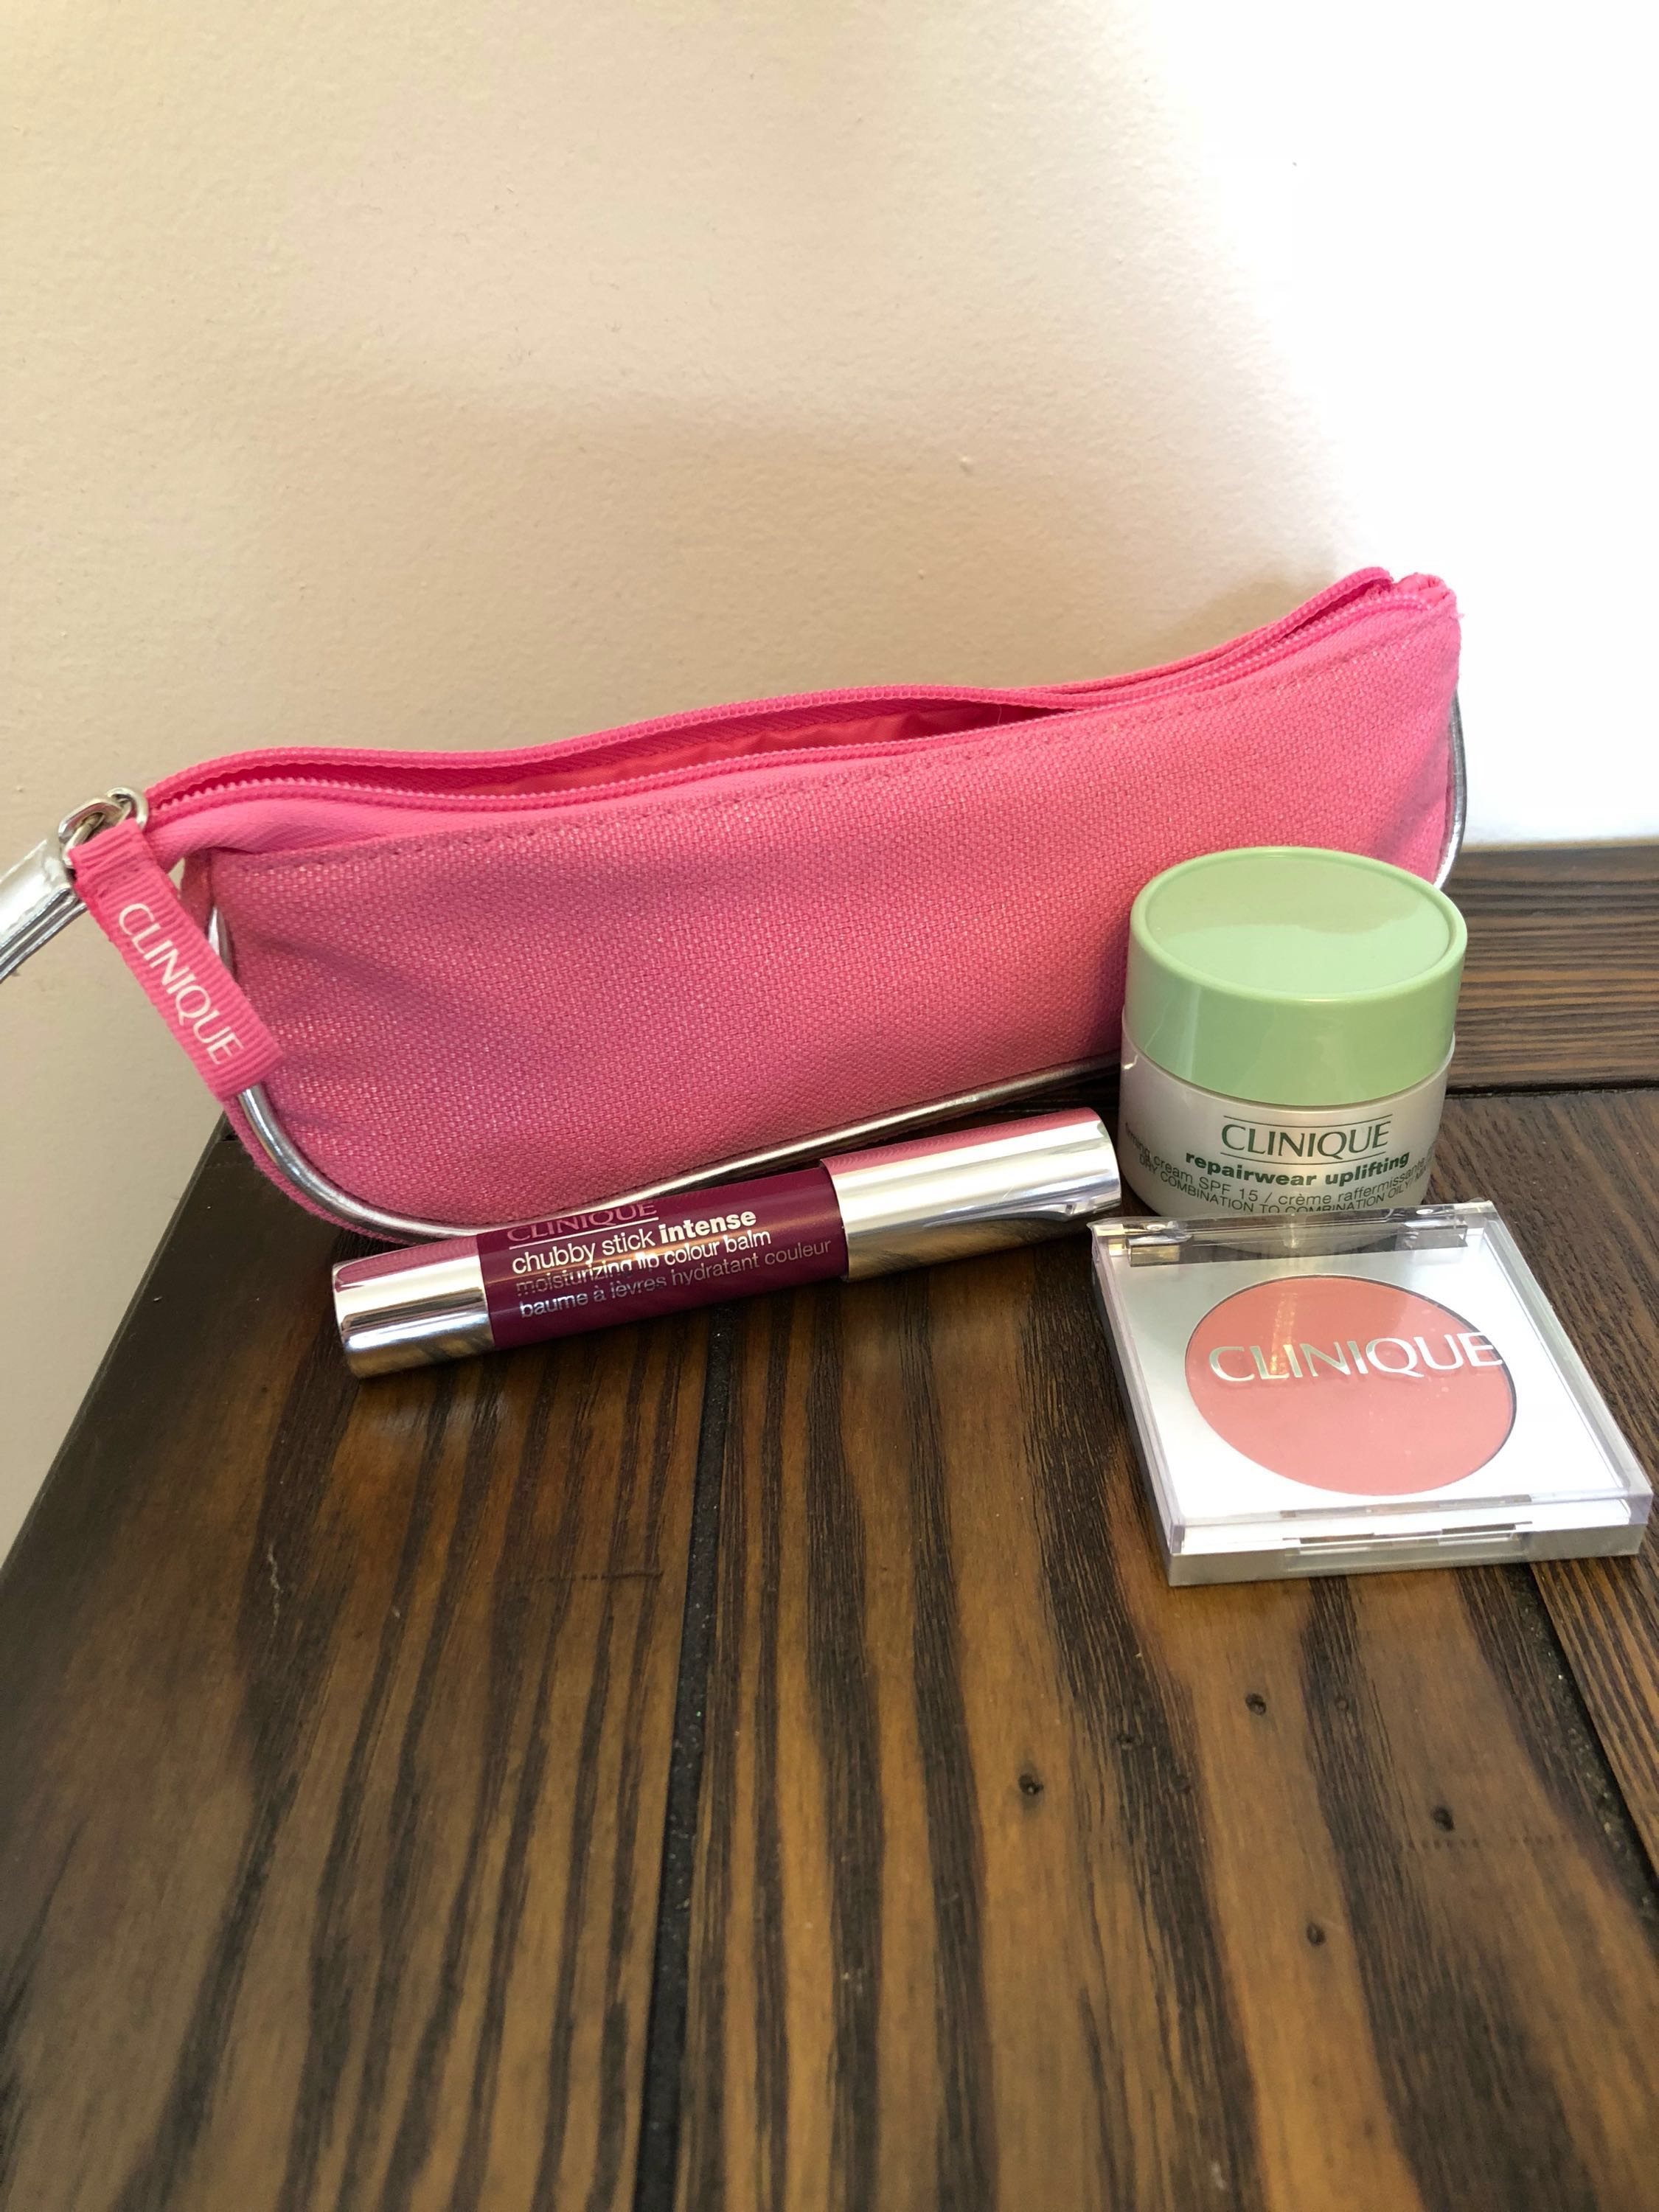 BN Clinique Gift set with Chubby Stick, Blush, etc.